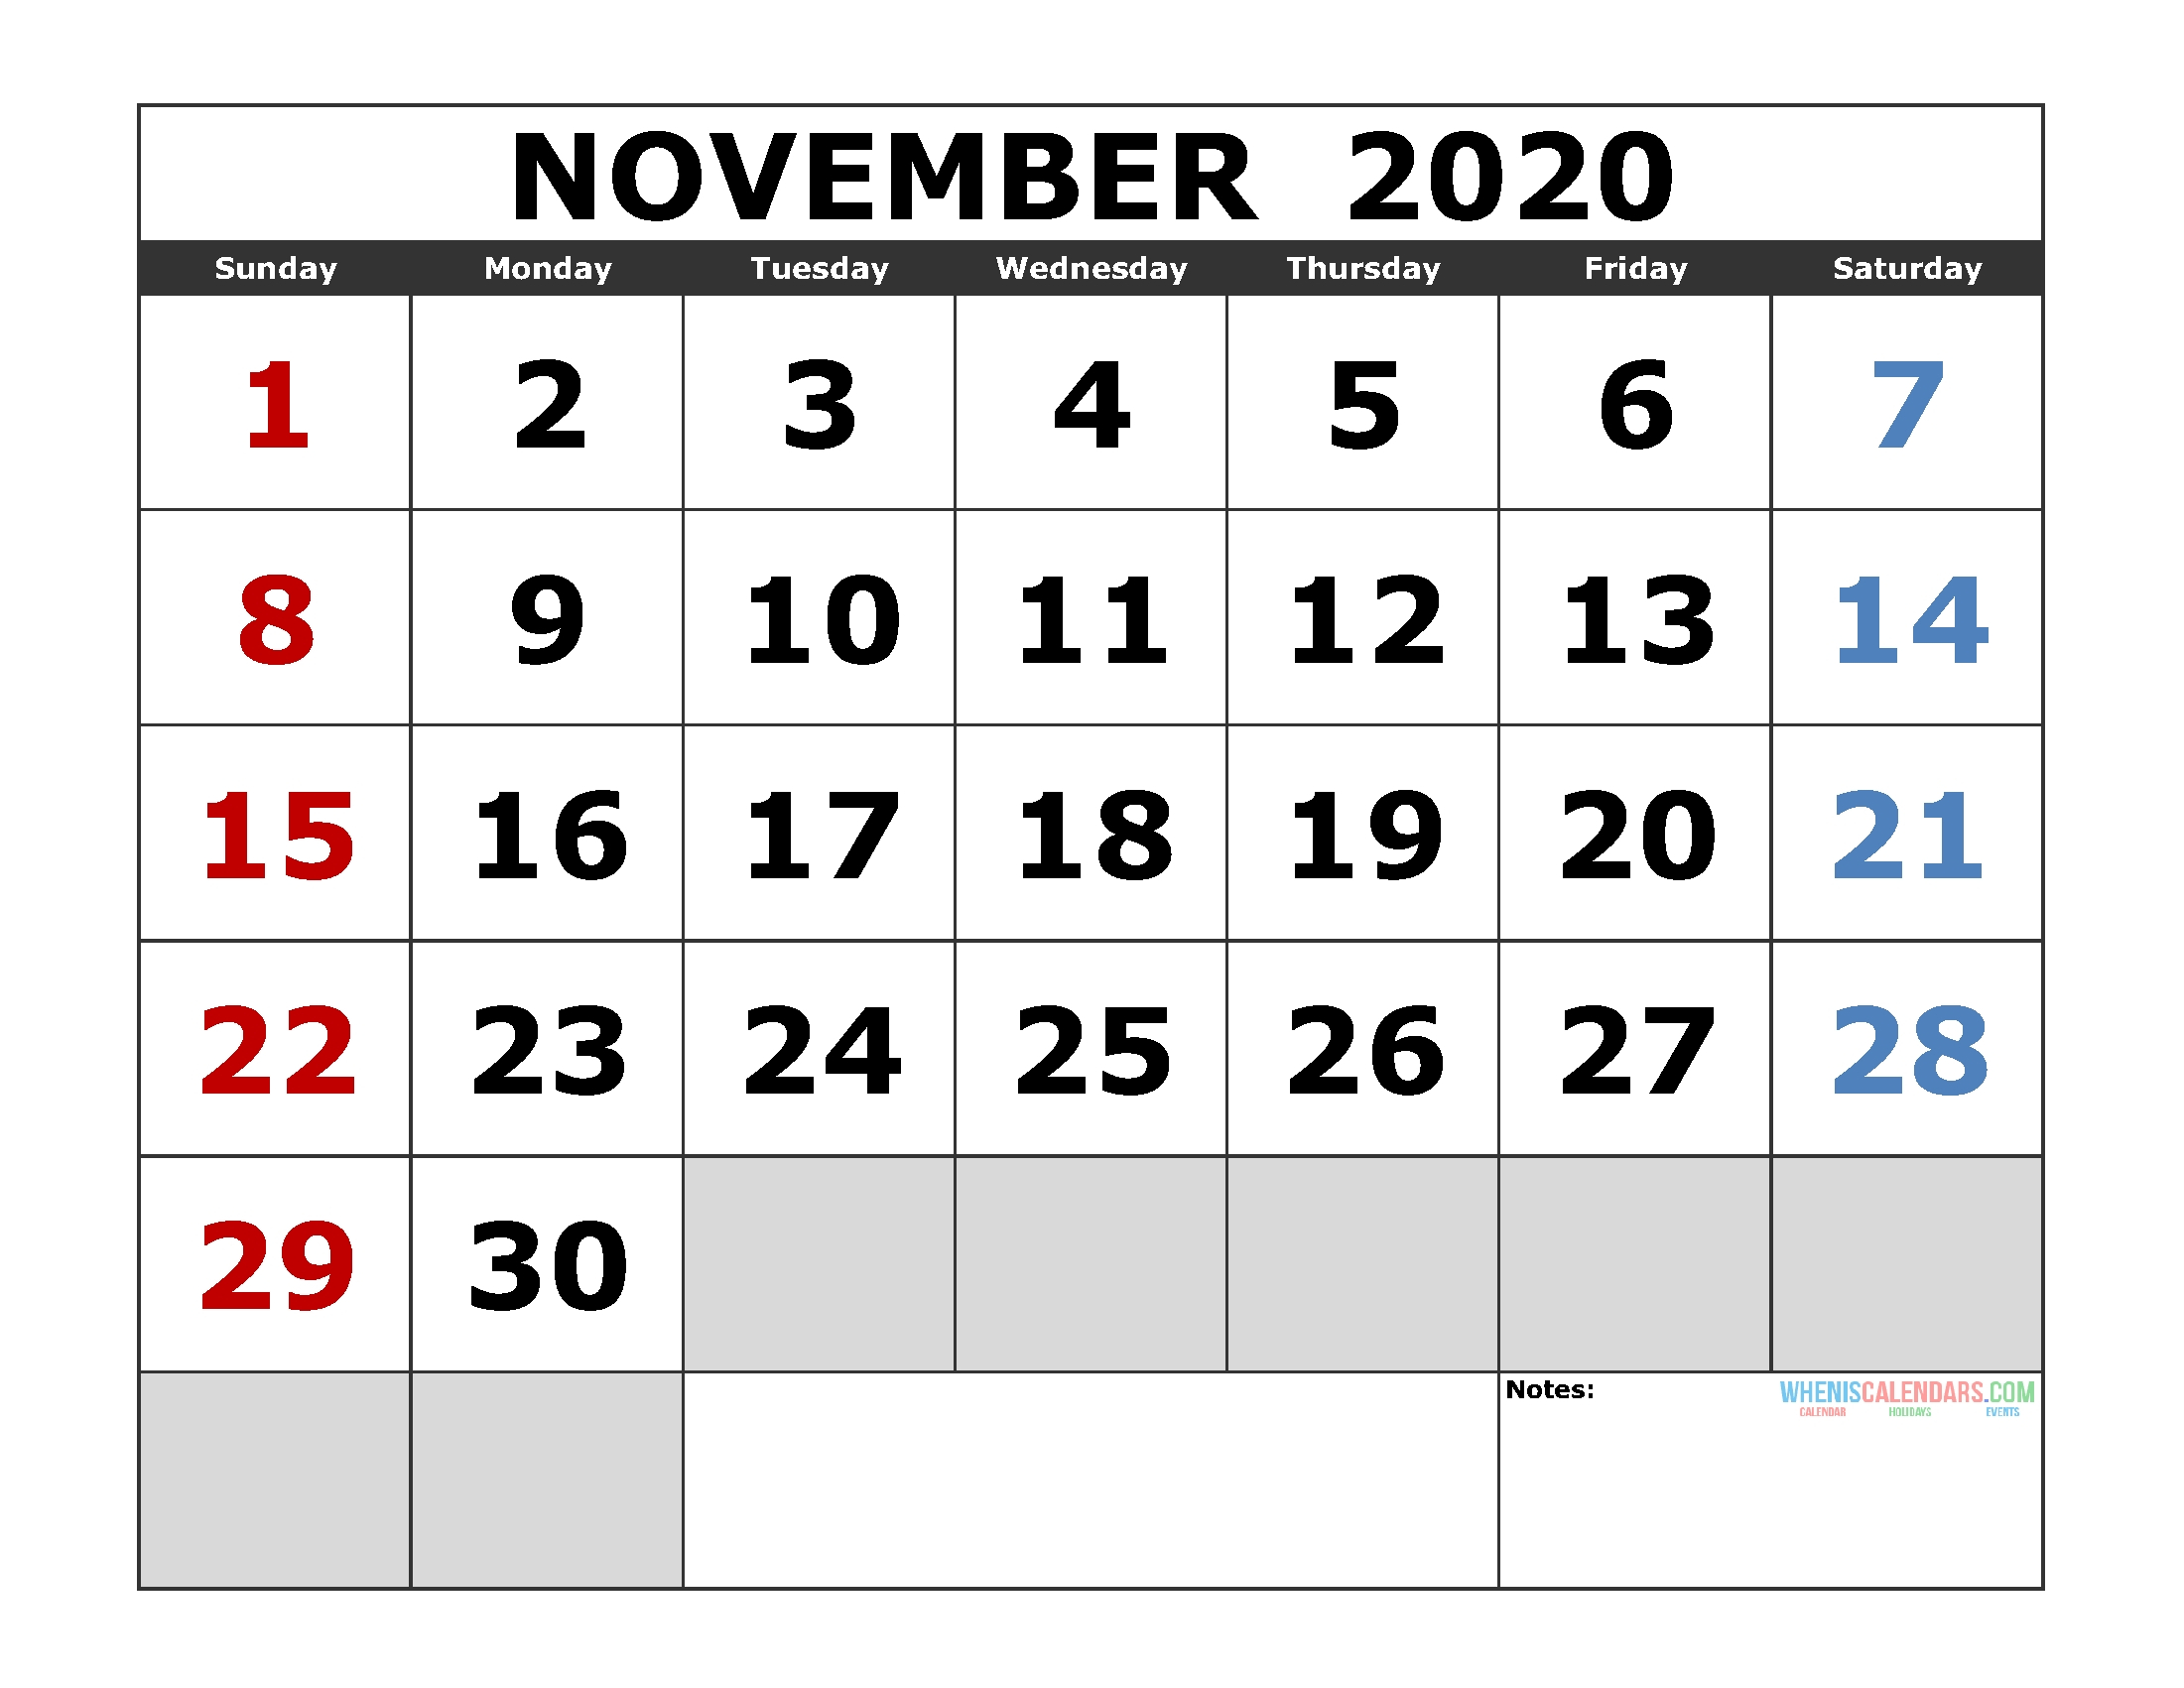 Printable Monthly Calendar November 2020 Excel | Monthly within November 2020 Calendar Excel